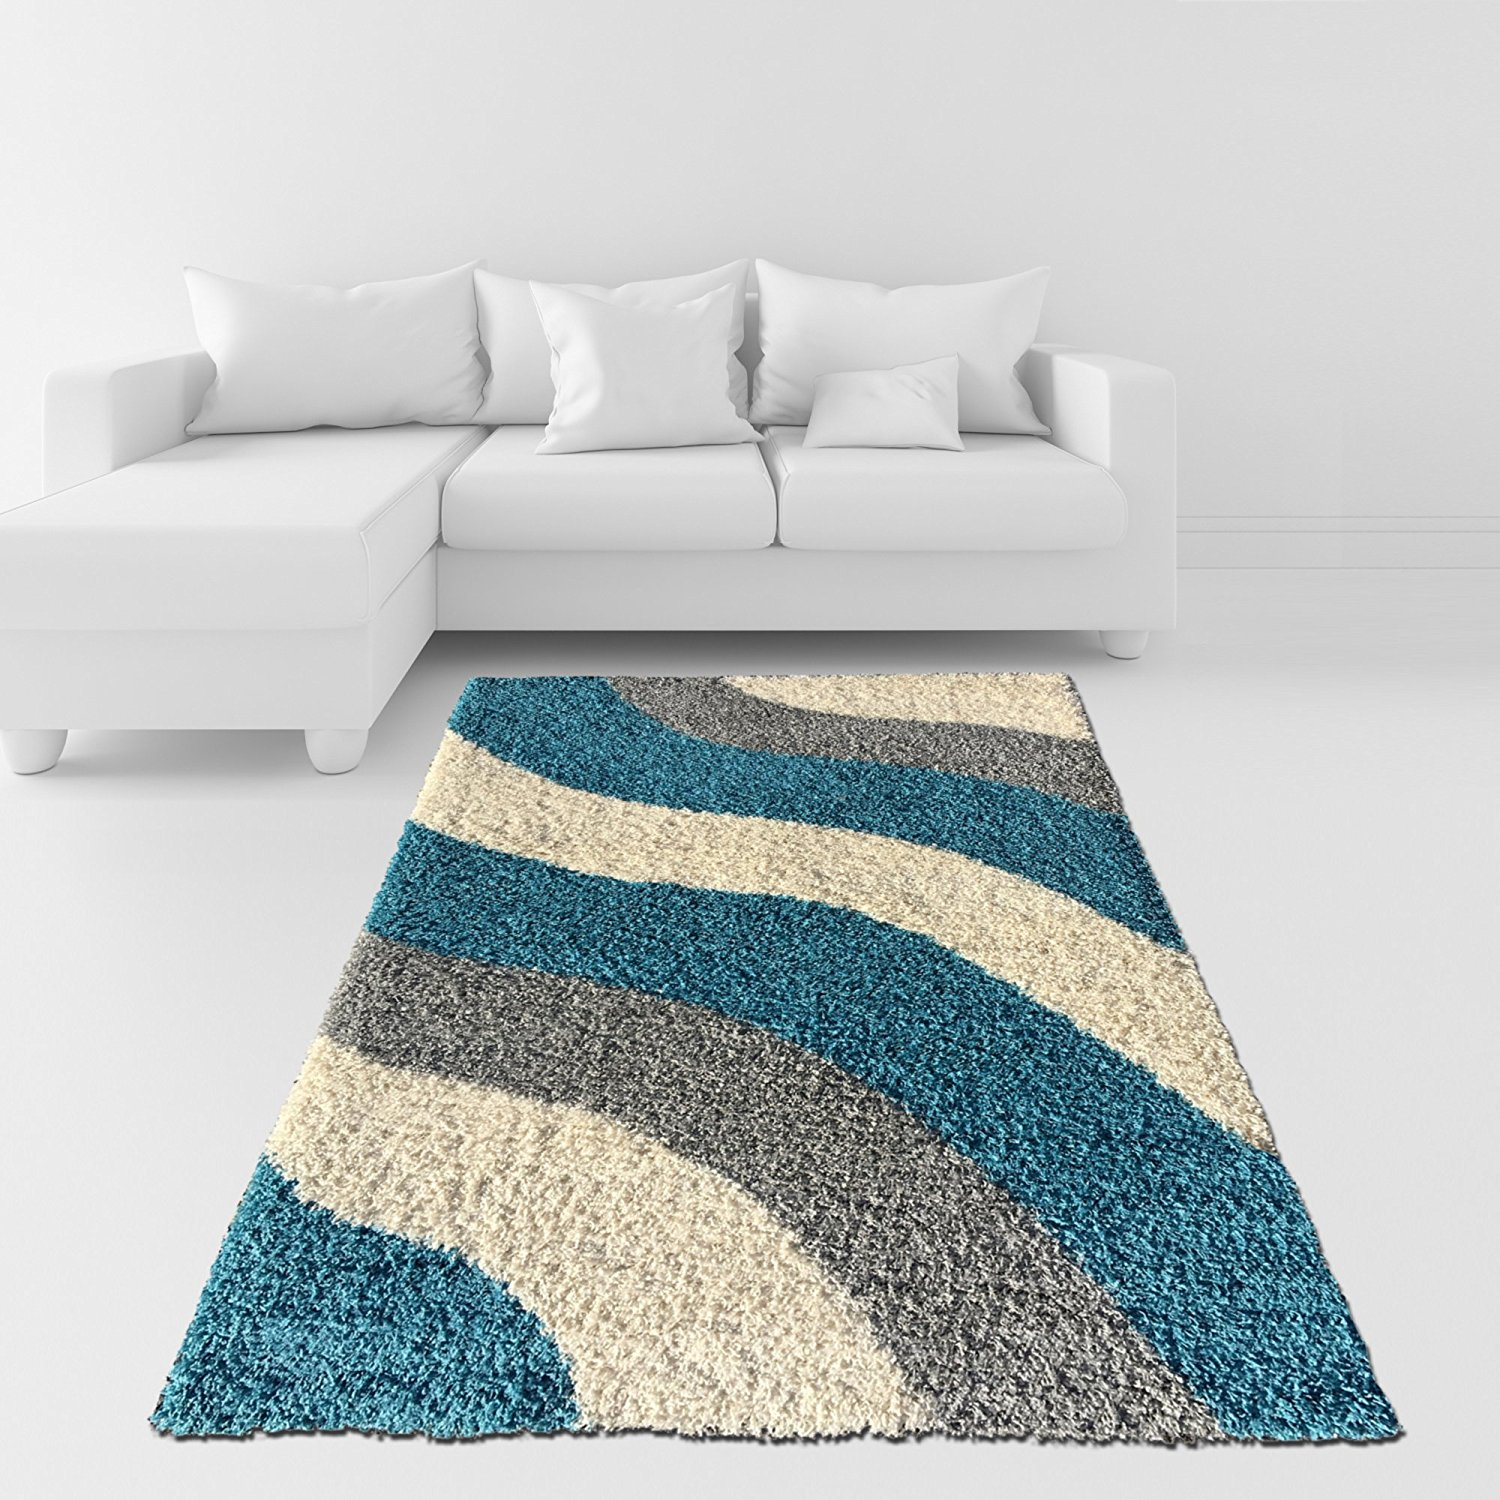 Buy Modern Shaggy area rugs soft chenille grey brown carpet living ...